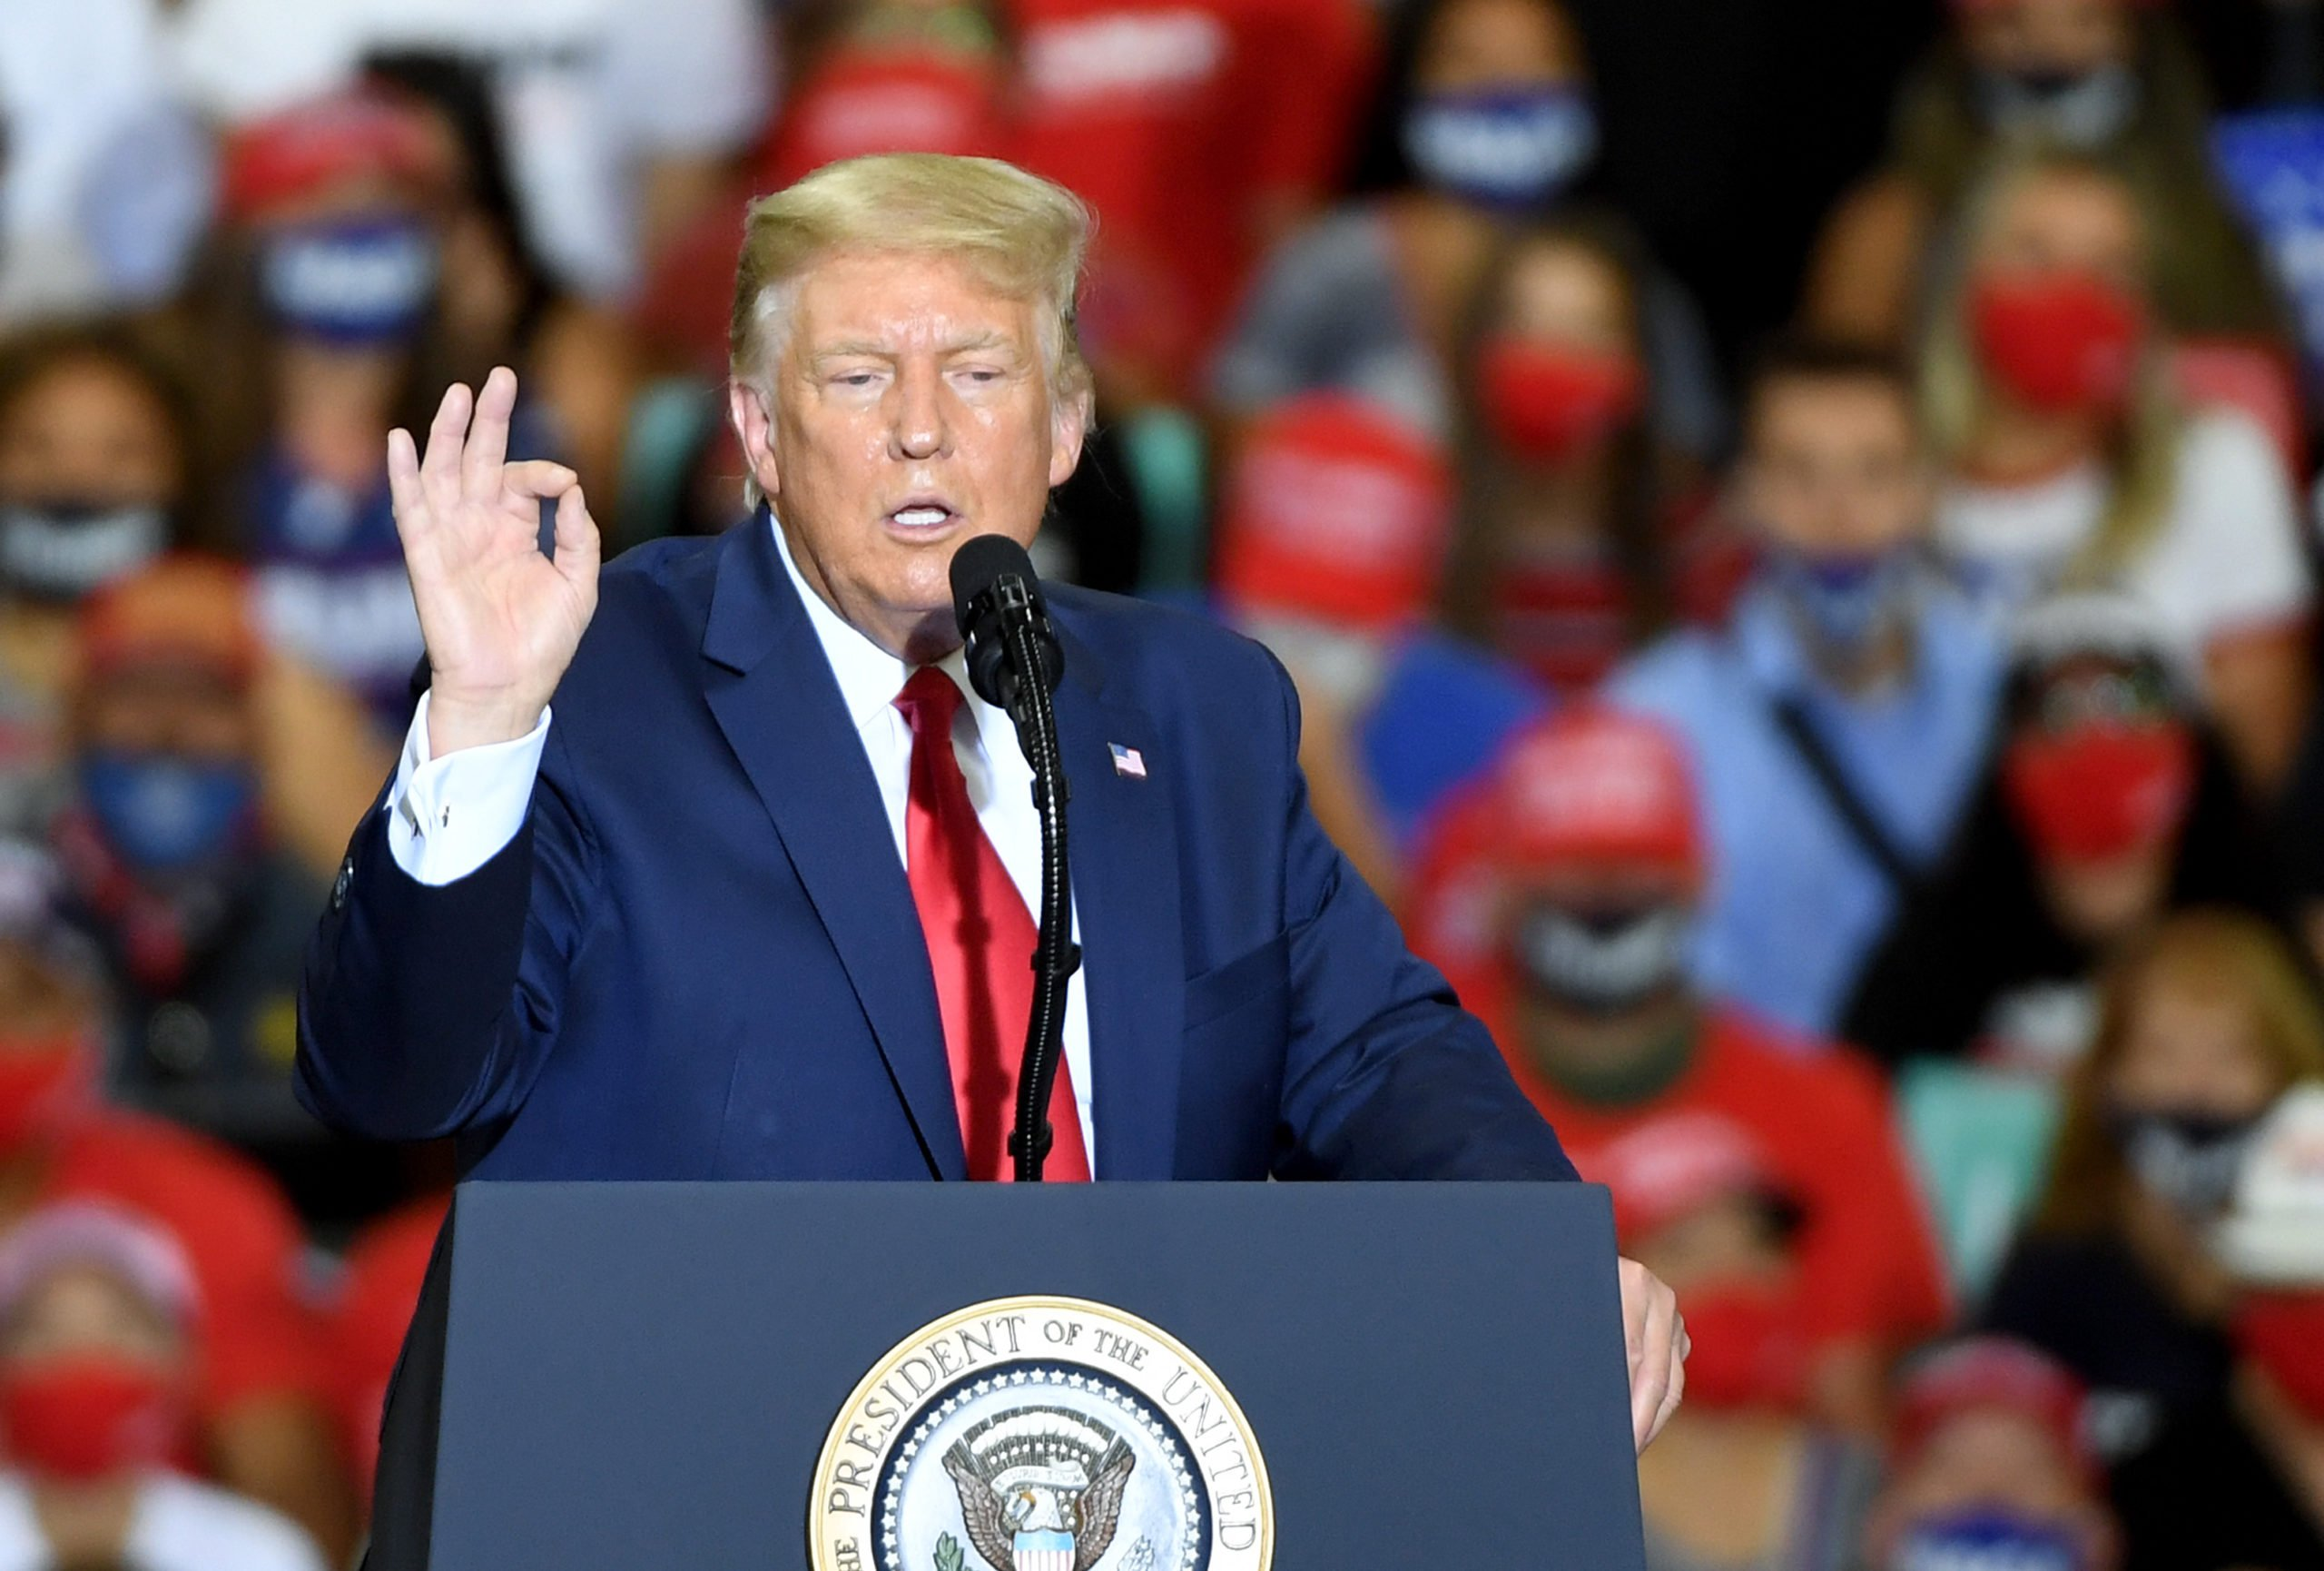 HENDERSON, NEVADA - SEPTEMBER 13: U.S. President Donald Trump speaks during a campaign event at Xtreme Manufacturing on September 13, 2020 (Photo by Ethan Miller/Getty Images)